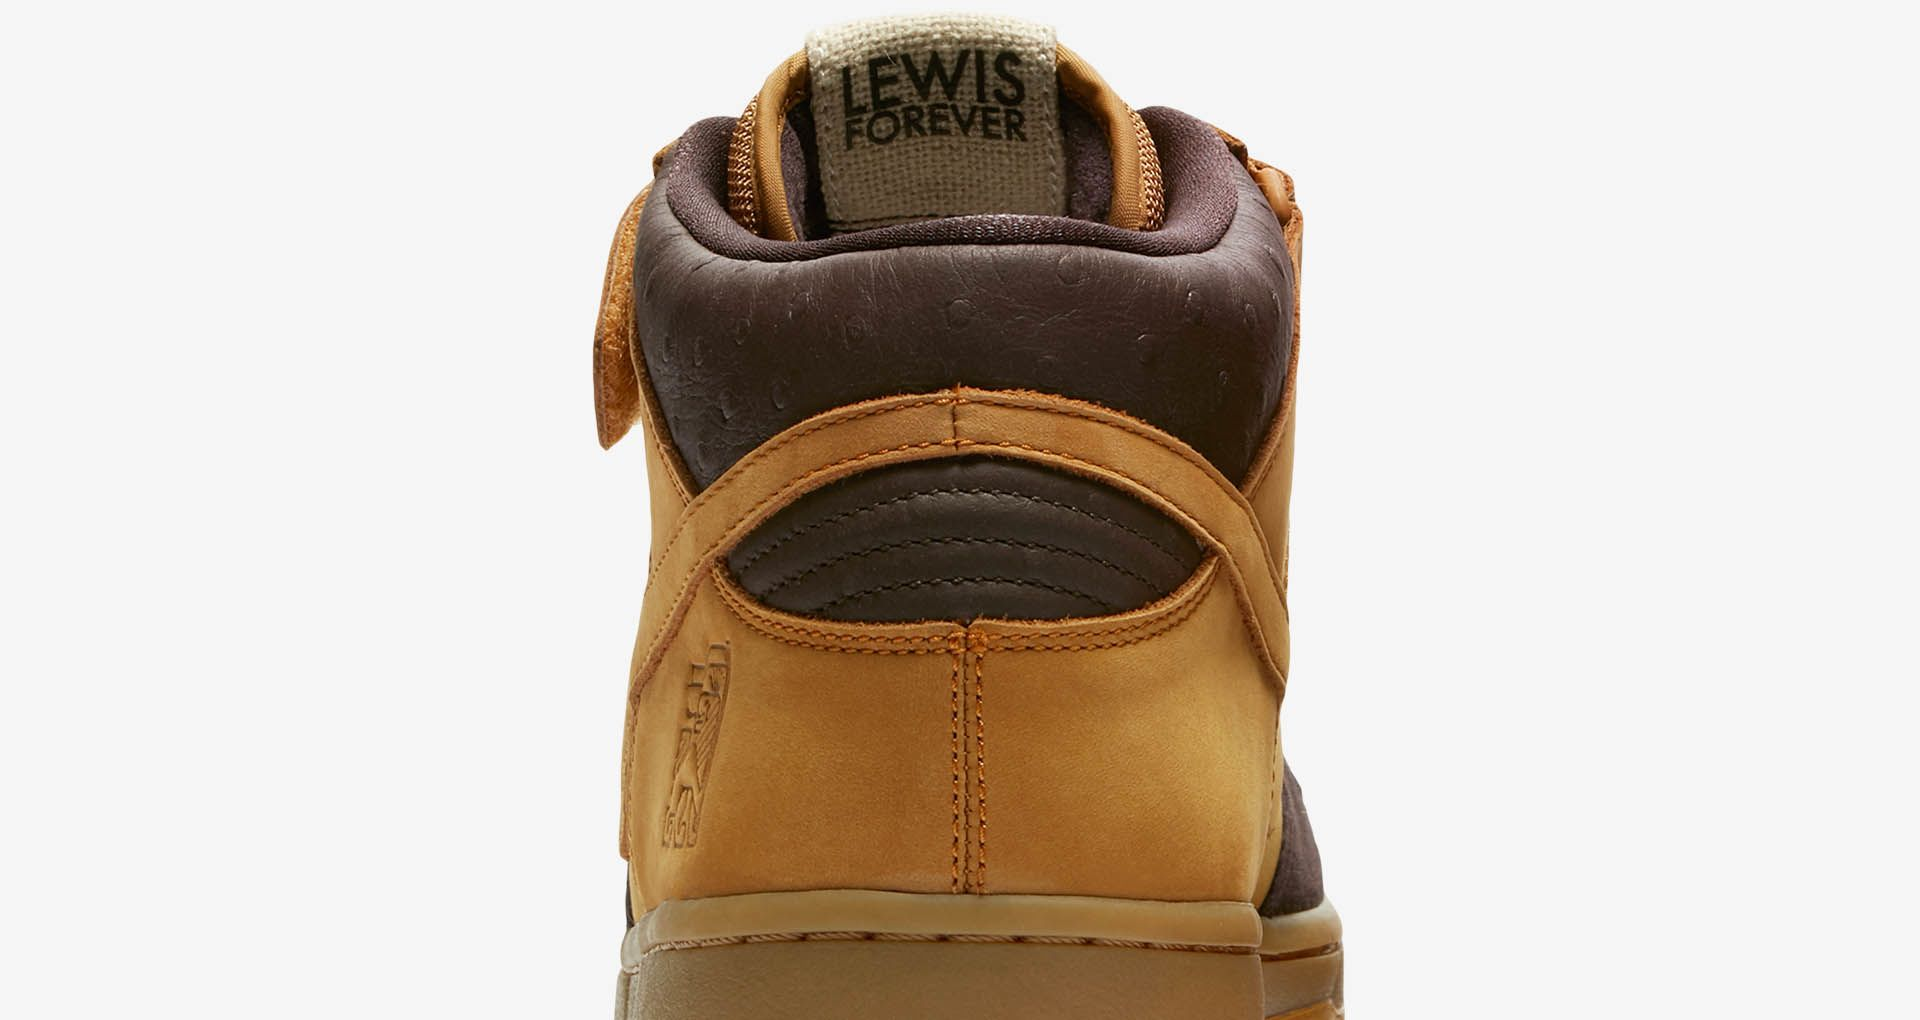 timeless design 38682 7b5d4 Nike SB Dunk Mid Pro 'Lewis Marnell' Release Date. Nike⁠+ SNKRS